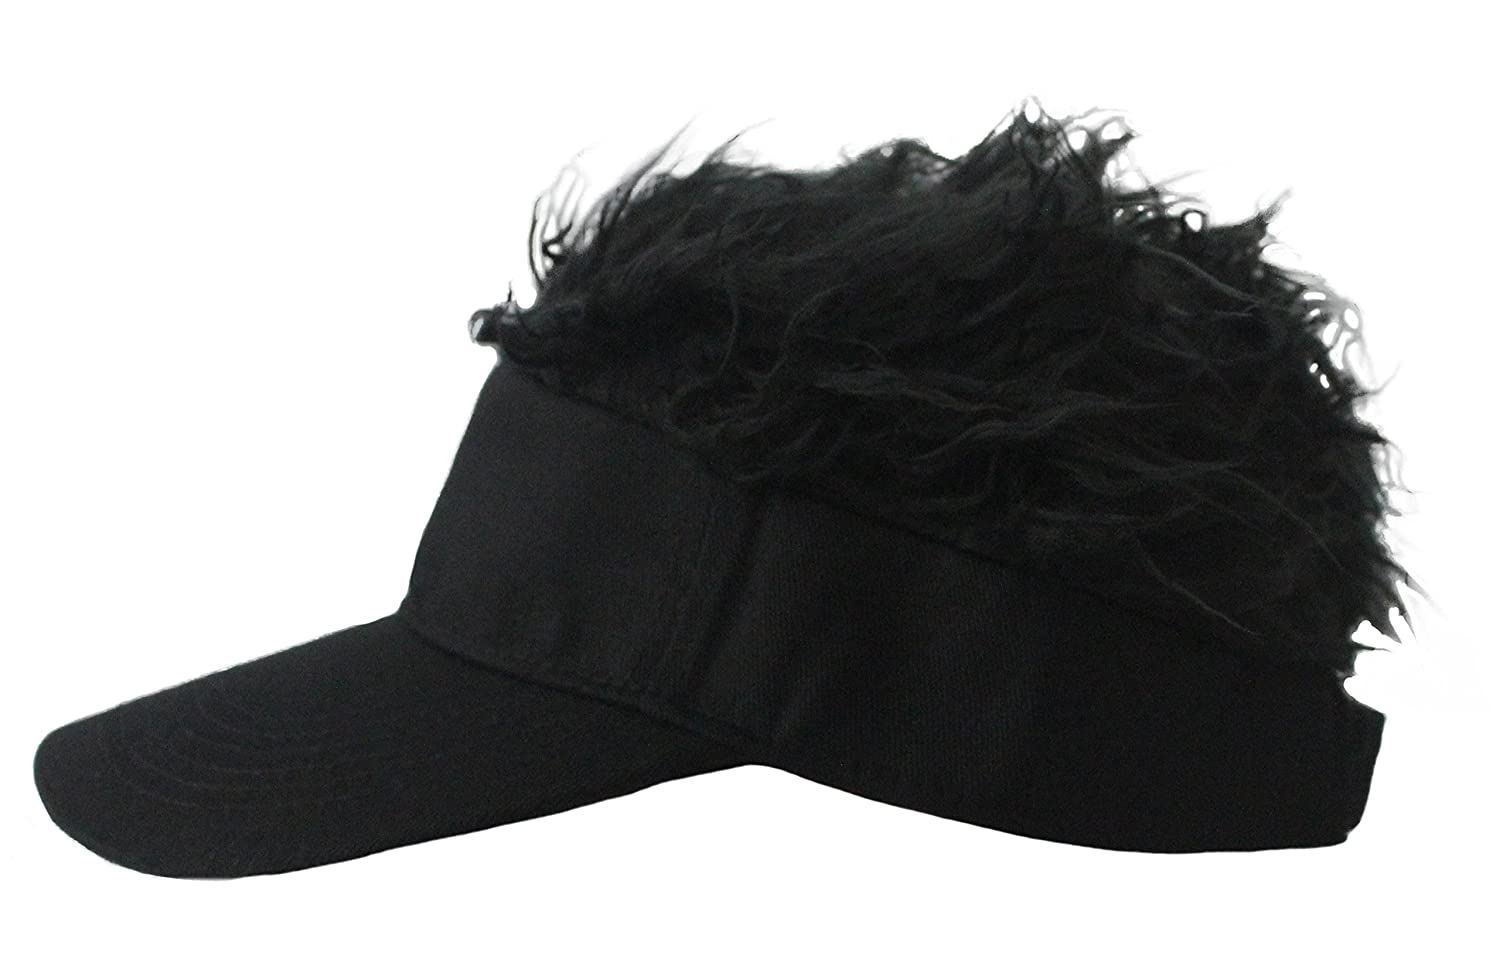 Mens Creative Novelty Sun Visor Cap with Fake Hair